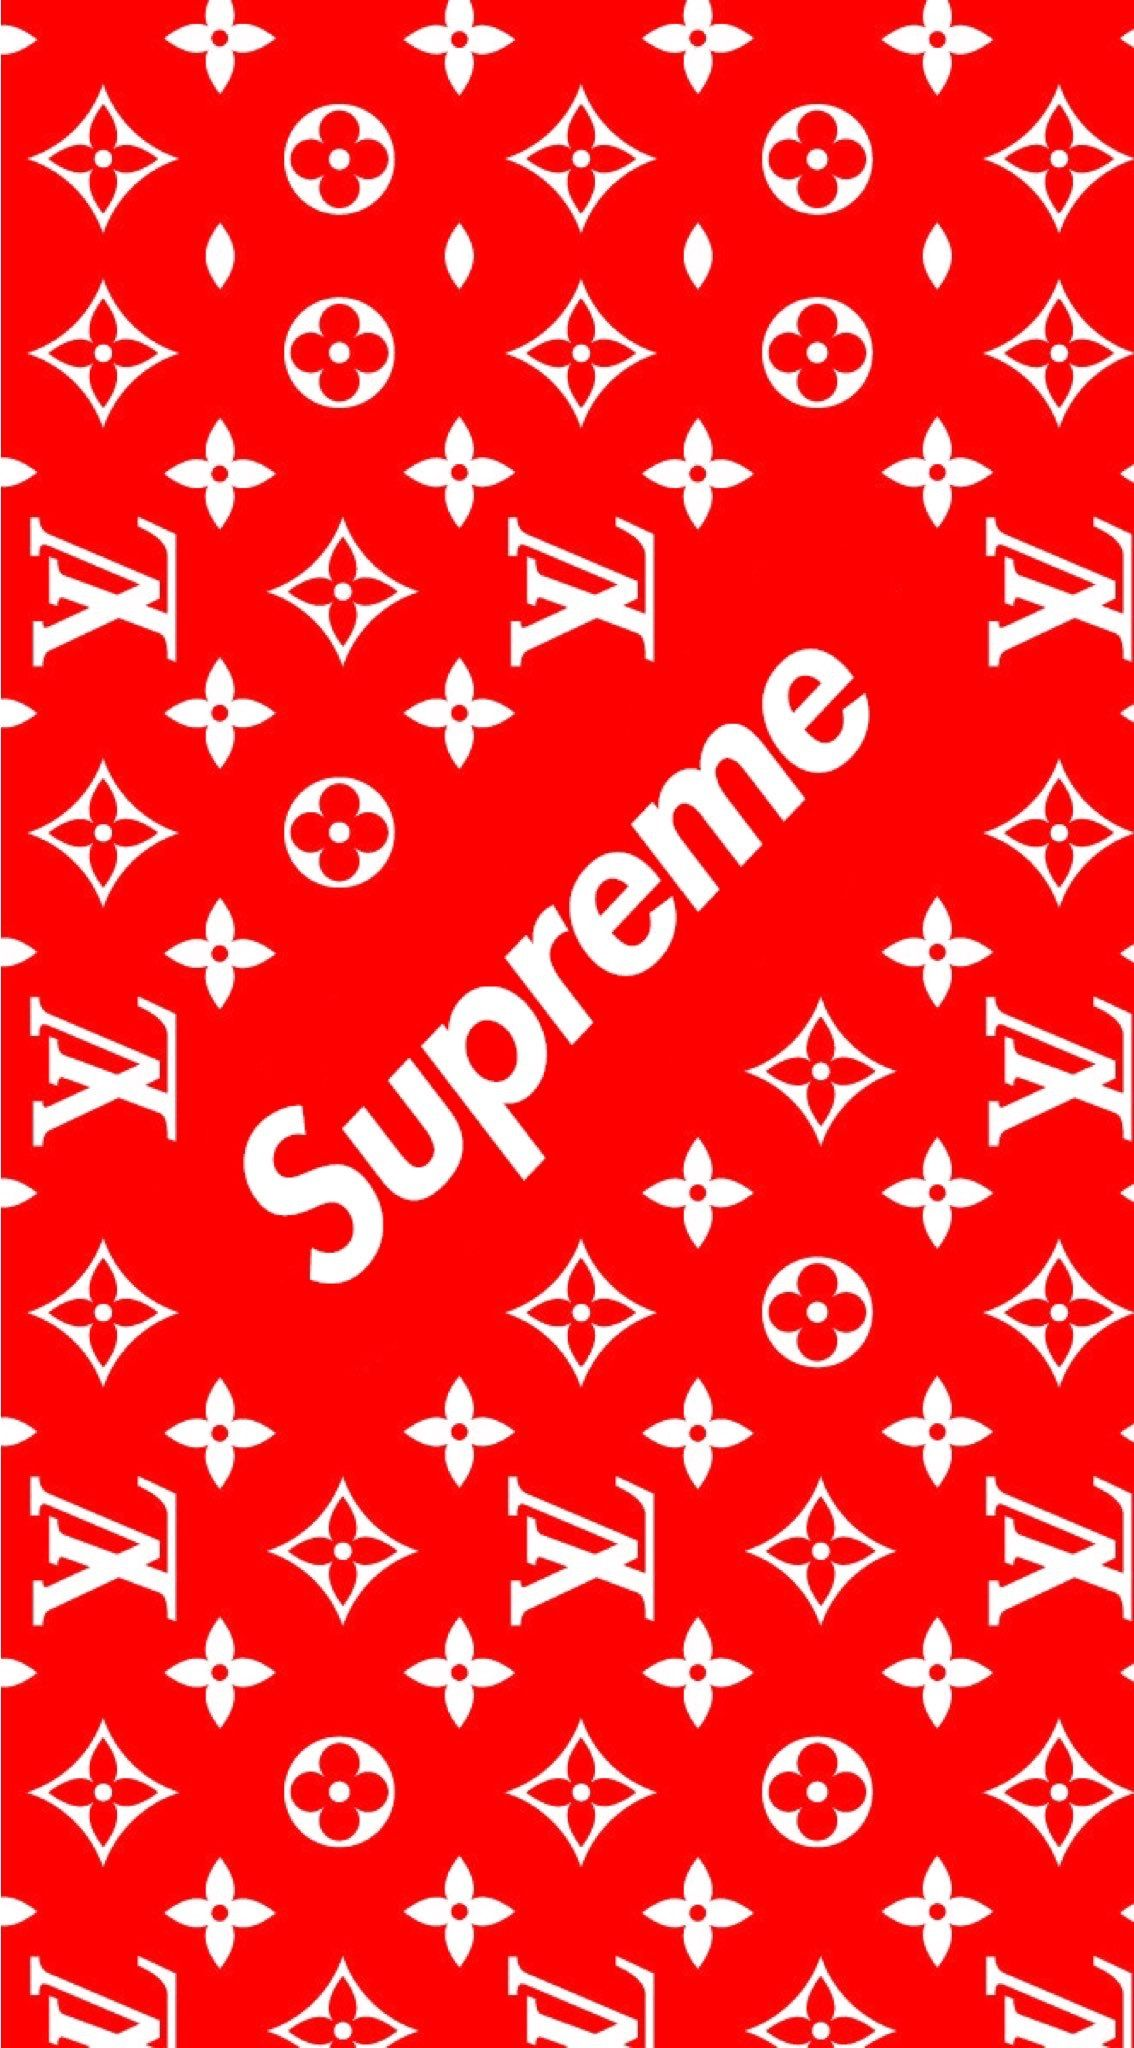 Stencils besides 491314640585261236 moreover Bape Girl together with Supreme Sopranos Tee Sale also Bape Shark Wallpaper 1080p. on bape stencil